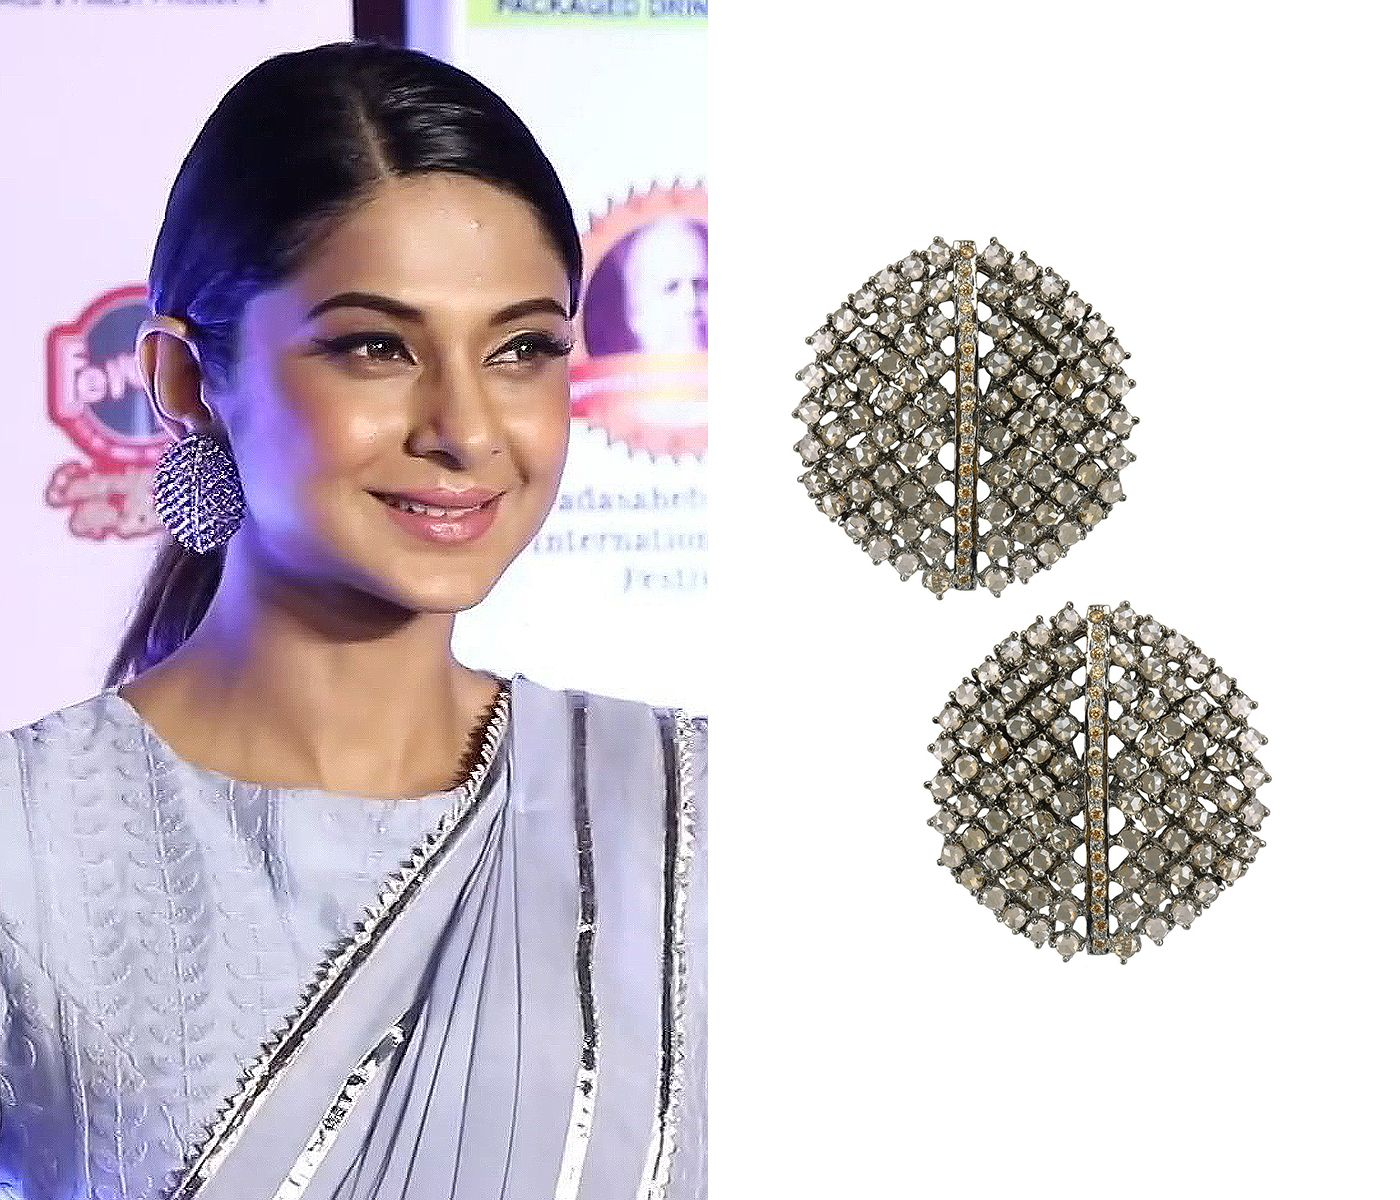 Sparkles Jennifer Winget Bedazzling In Antique Silver Finish Champagne Stones Studs By Nepra By Neha Goel Shop Now Ne Stone Studs Hand Harness Pop Up Shop